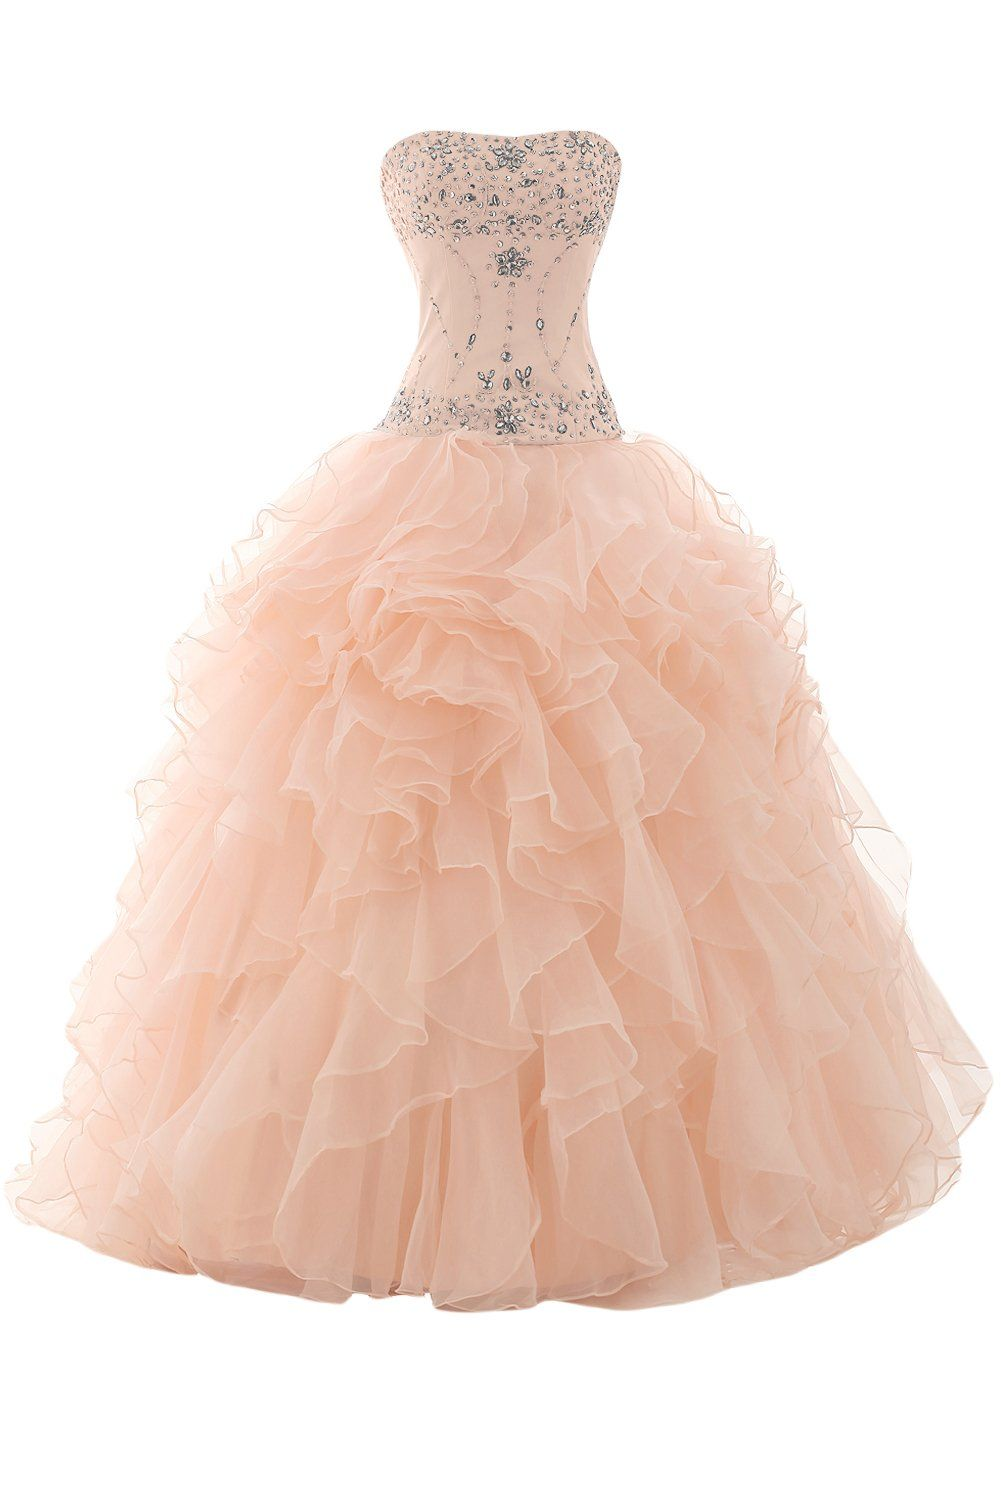 Sunvary organza ball gown skirt prom gowns quinceanera dresses